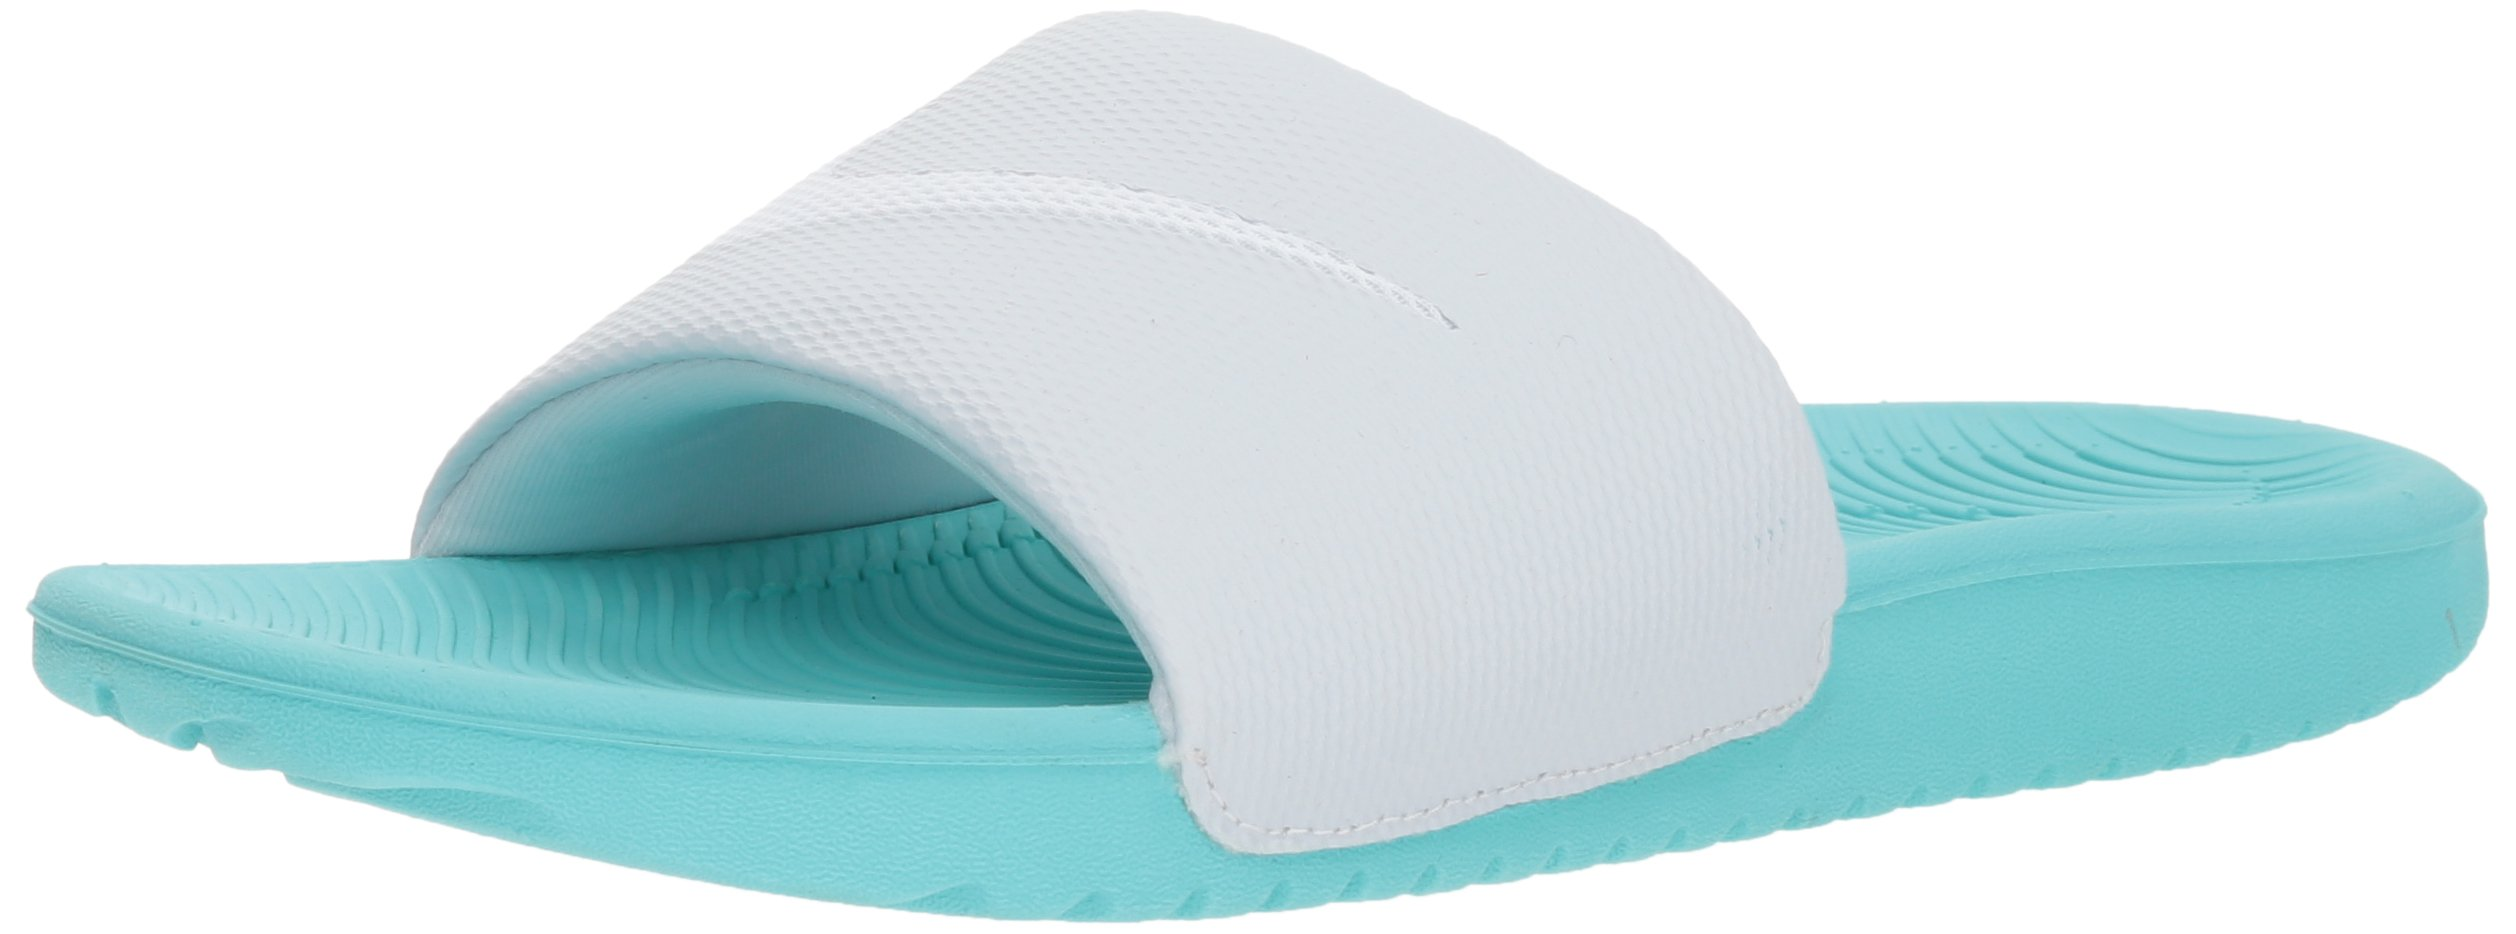 NIKE Women's Kawa Slide Sandal, Aurora Green/White/Pure Platinum, 9 B US